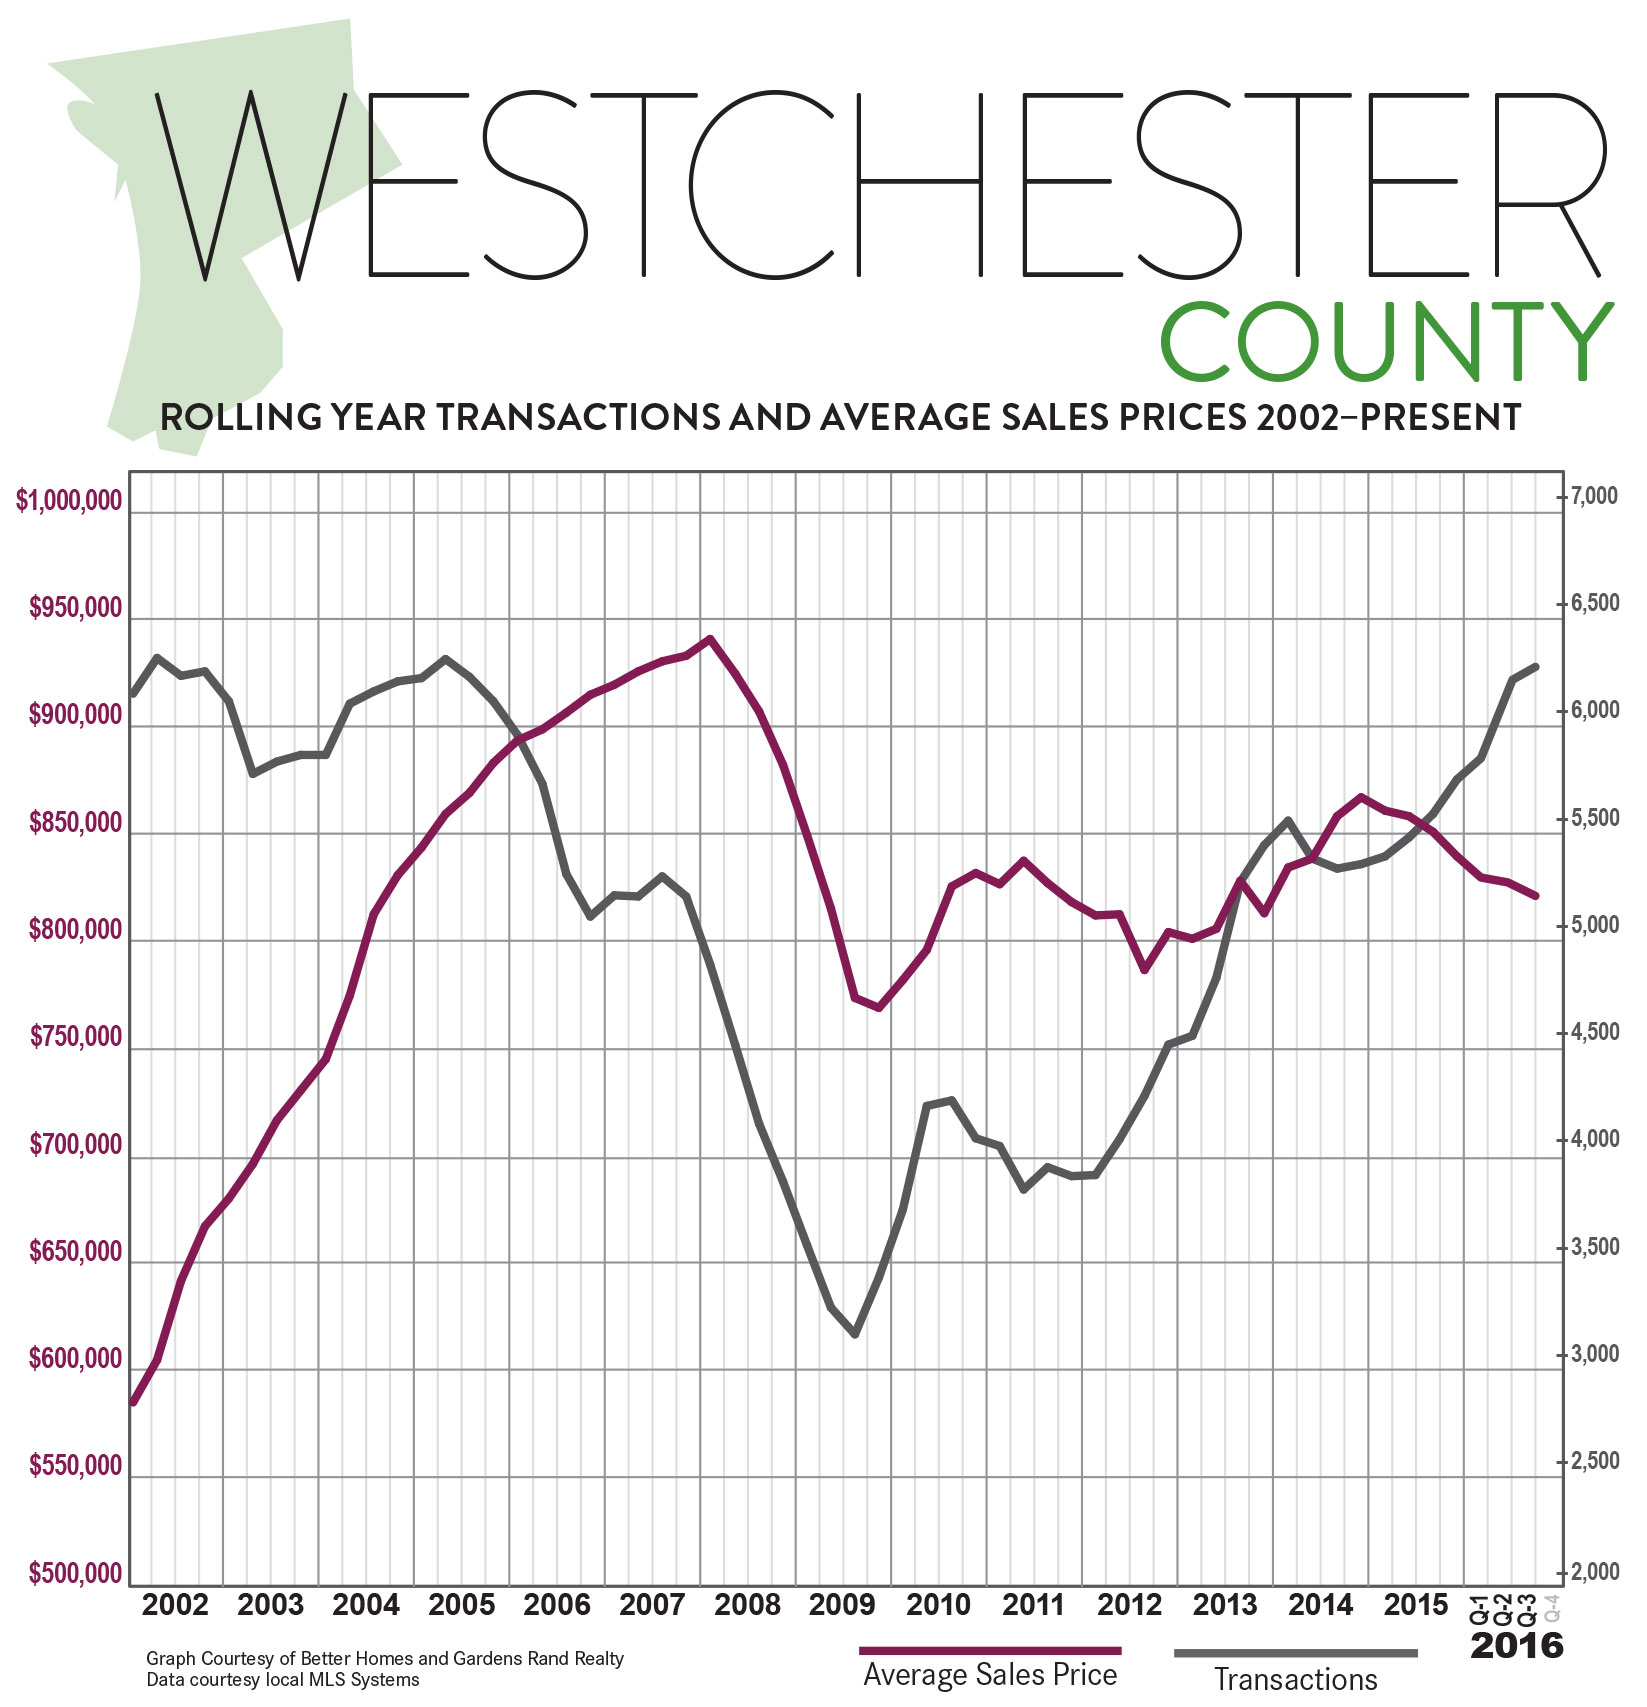 westchester-bhg_ny-west-hv_q3-2016-qmr-digital